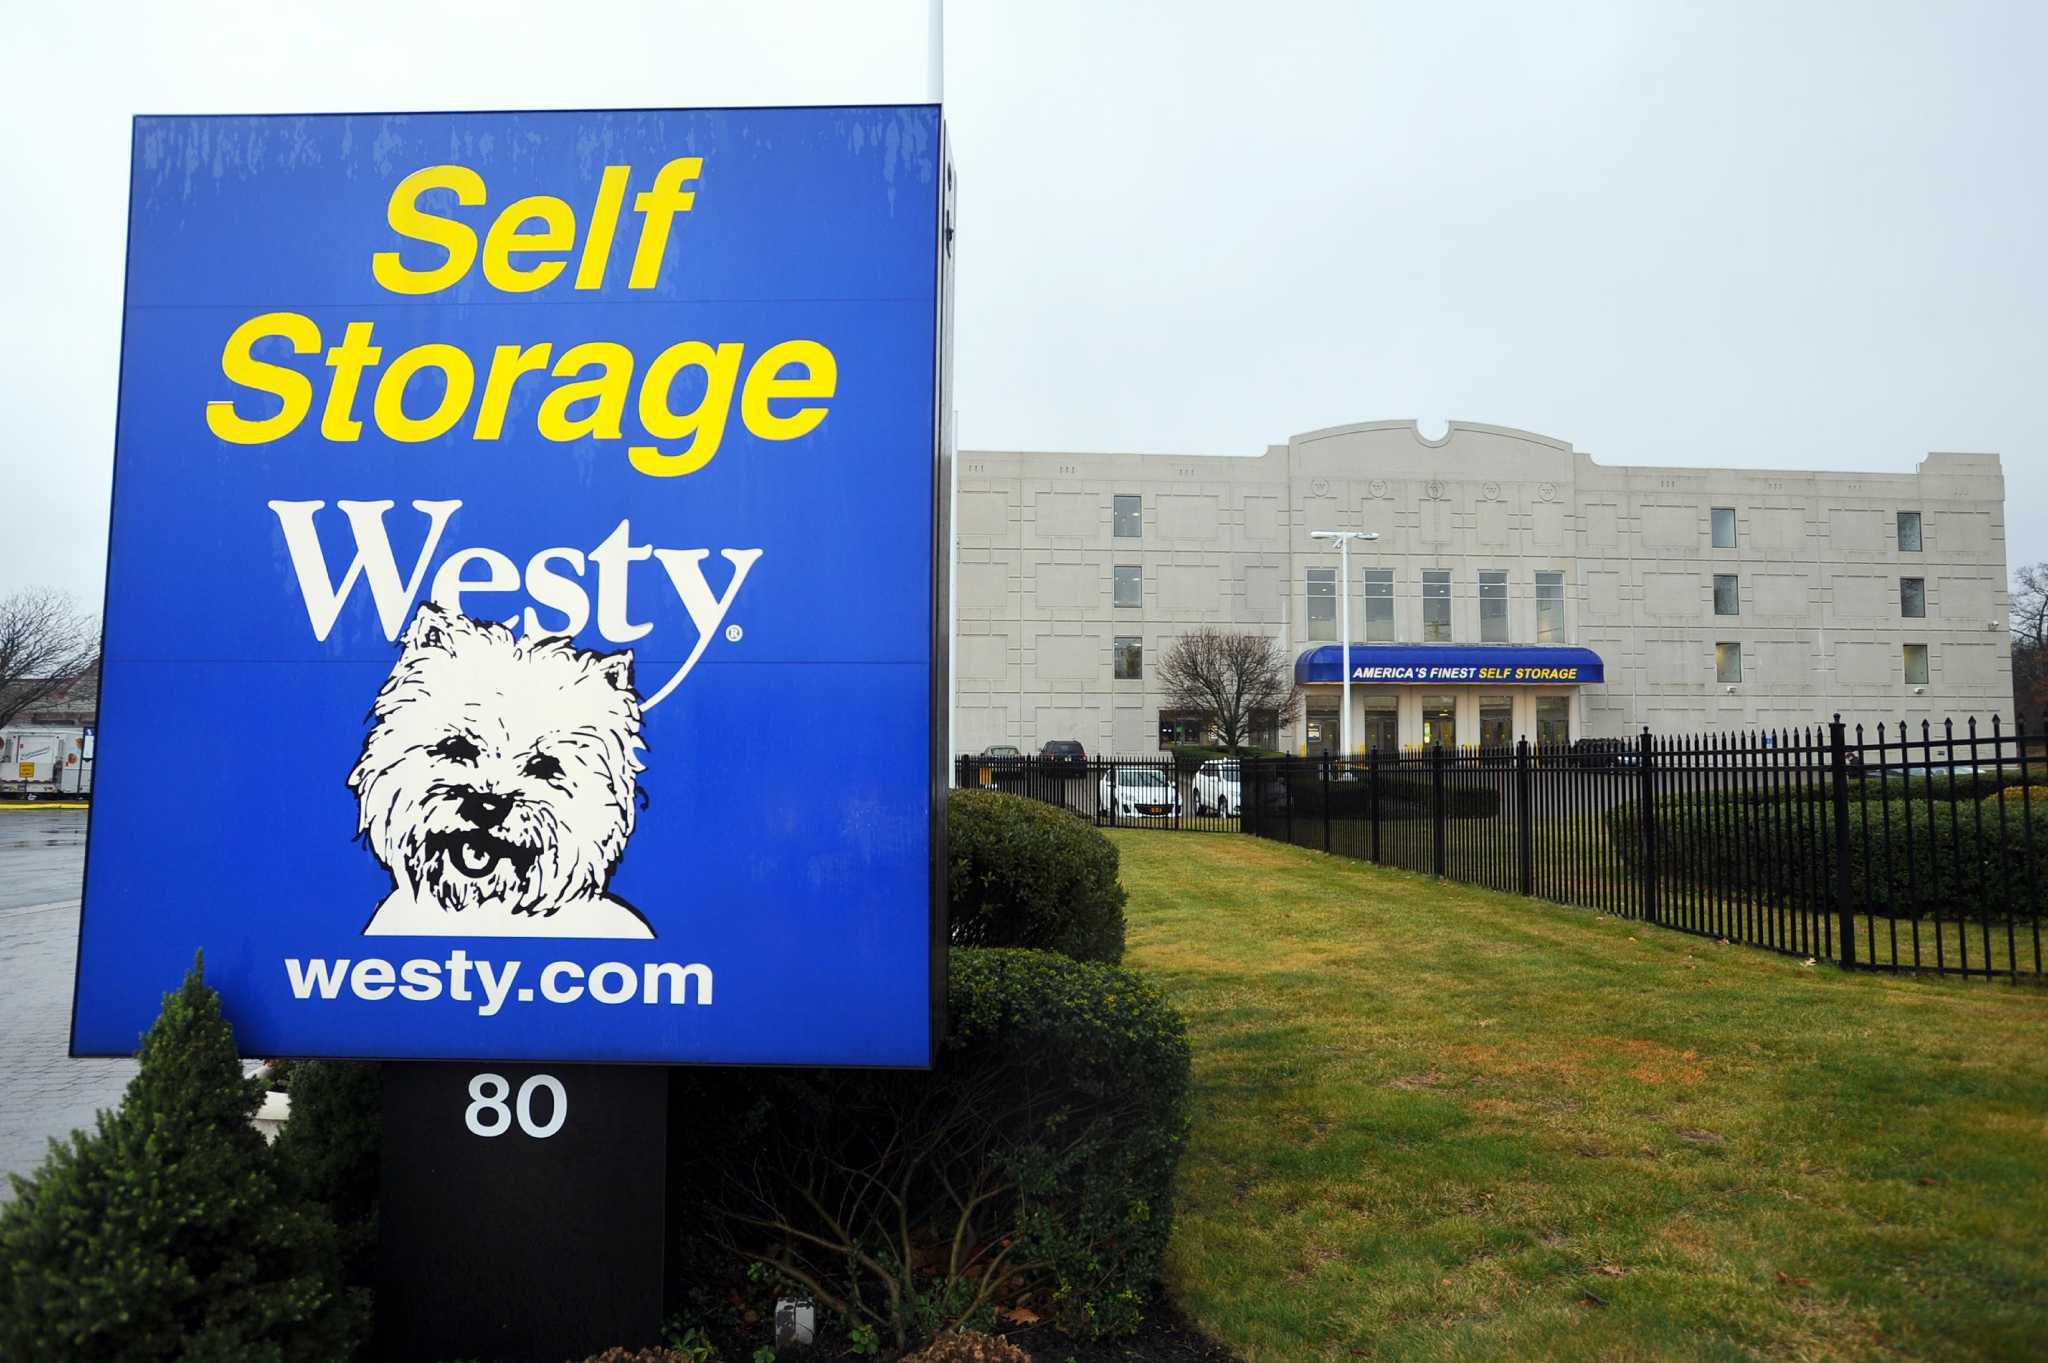 Room To Grow: Westy Self Storage Center Plans Stamford Expansion    StamfordAdvocate